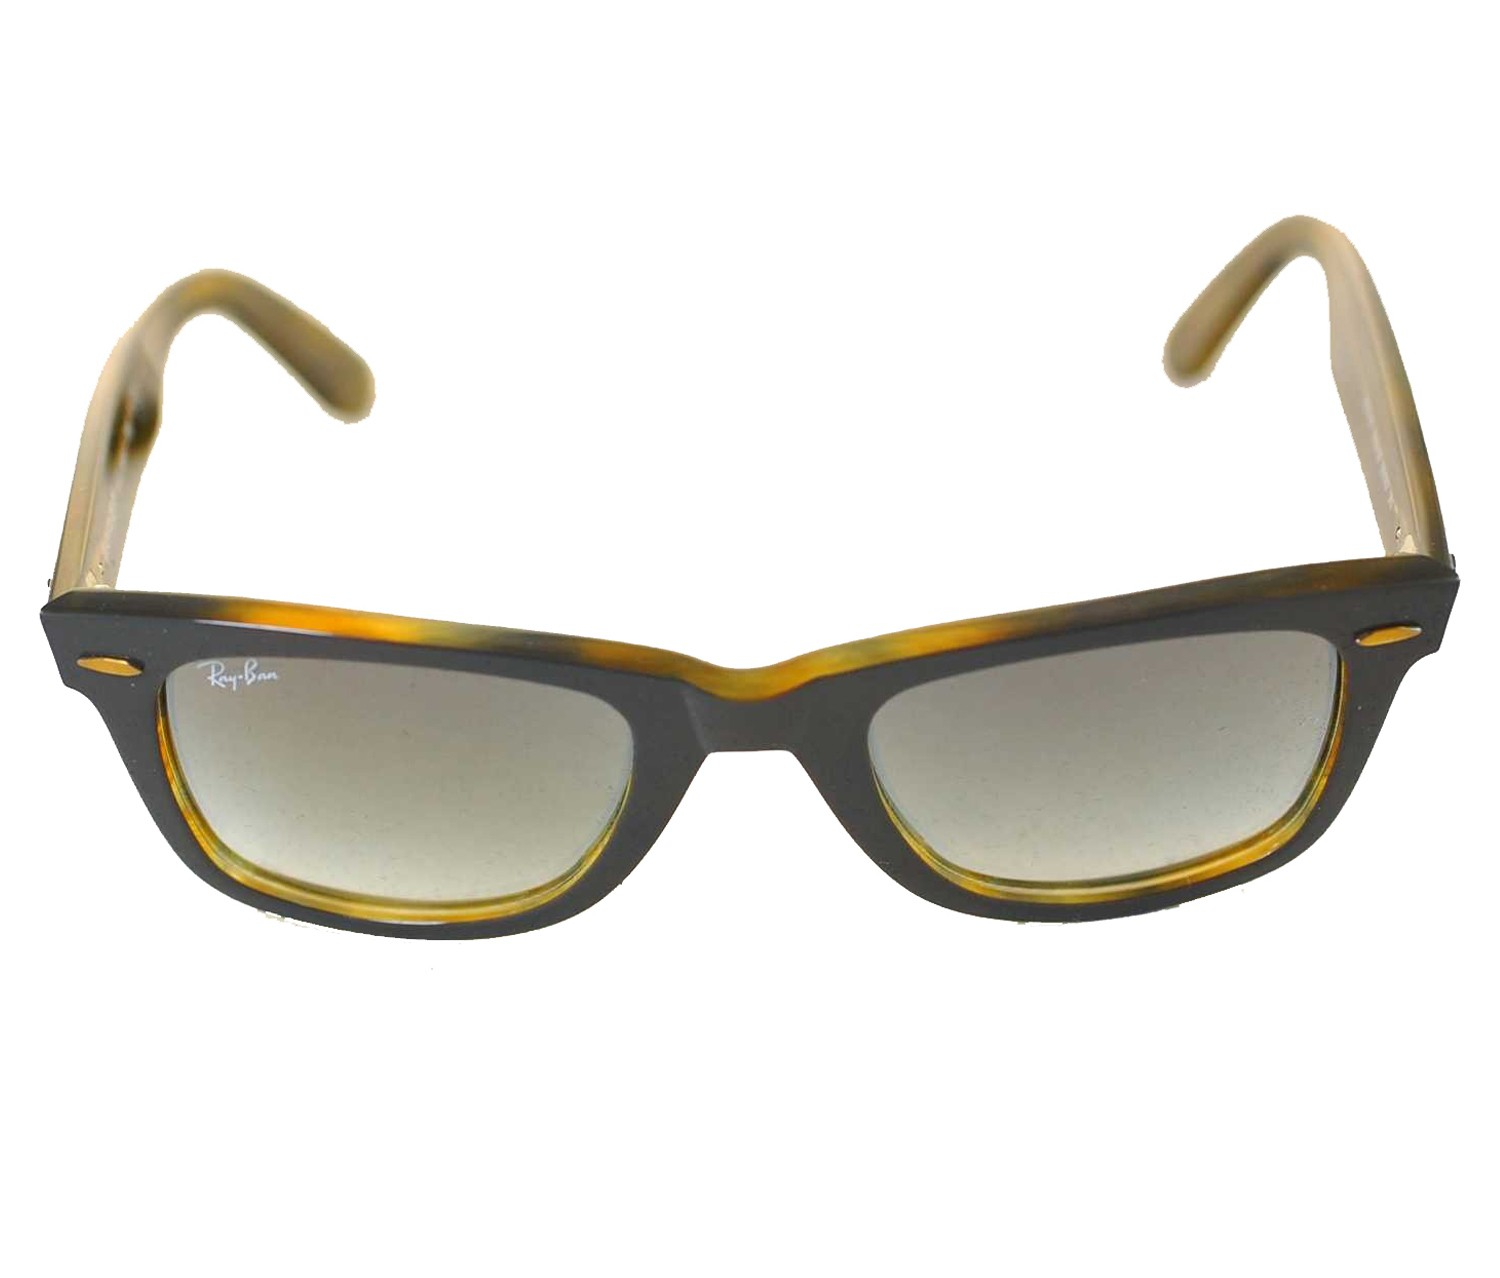 e0040e8f81 Ray Ban Wayfair Light Tortoise Shell Cat « Heritage Malta